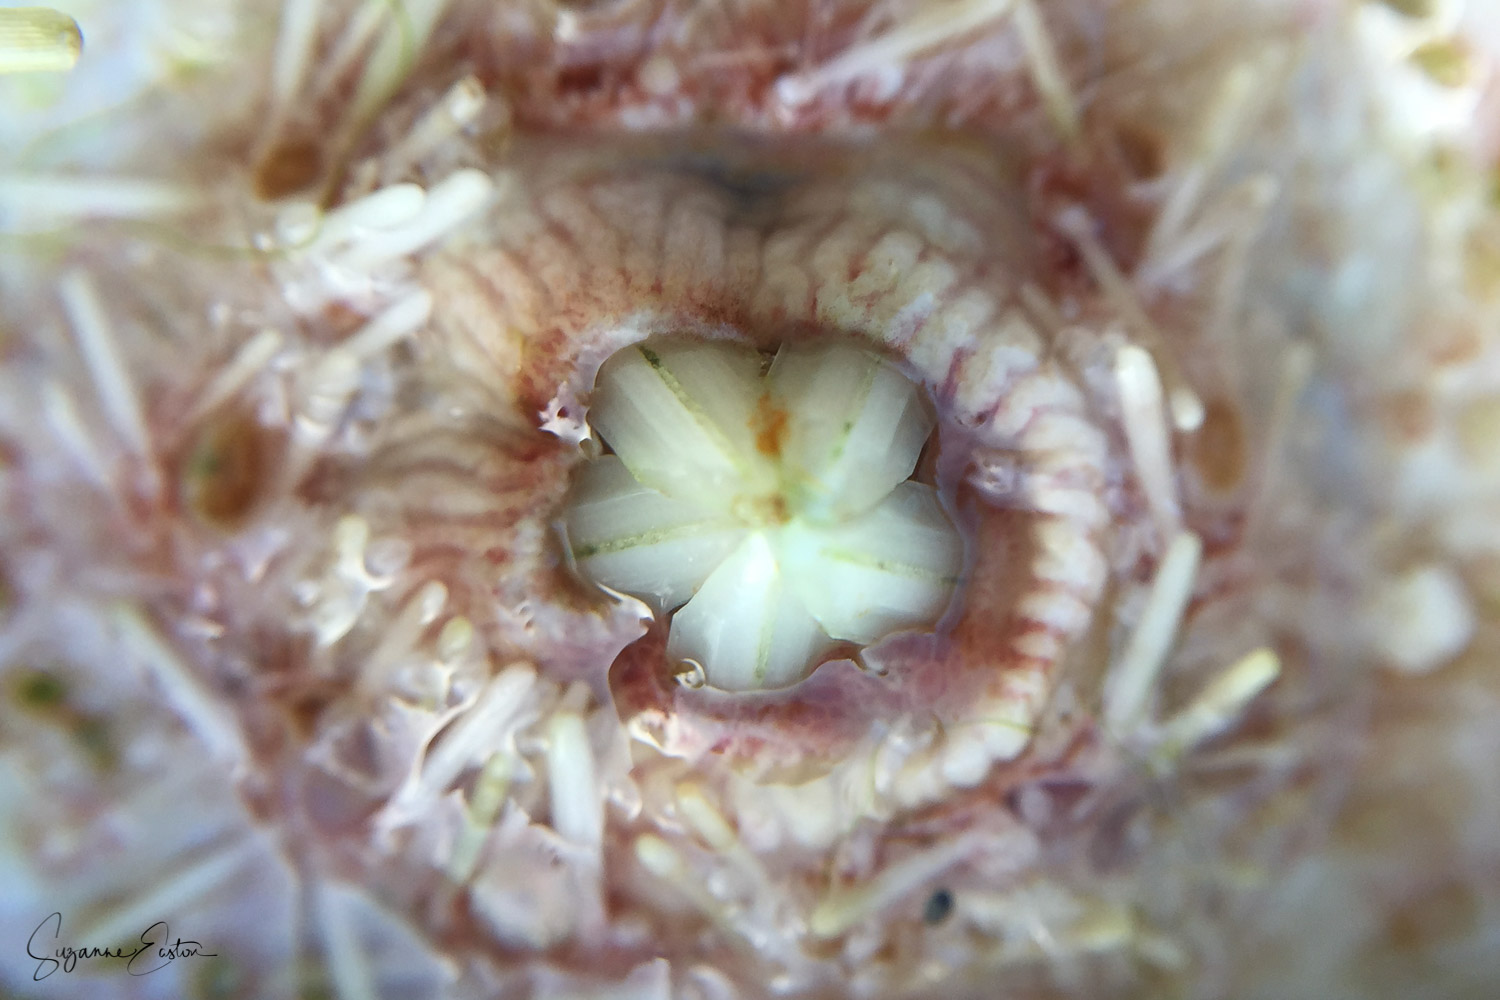 The mouth of a sea urchin and broken spines.  This sea urchin was washed up on the beach in a winter storm.  It was badly damaged and despite being returned to a rock pool it probably didn't survive.